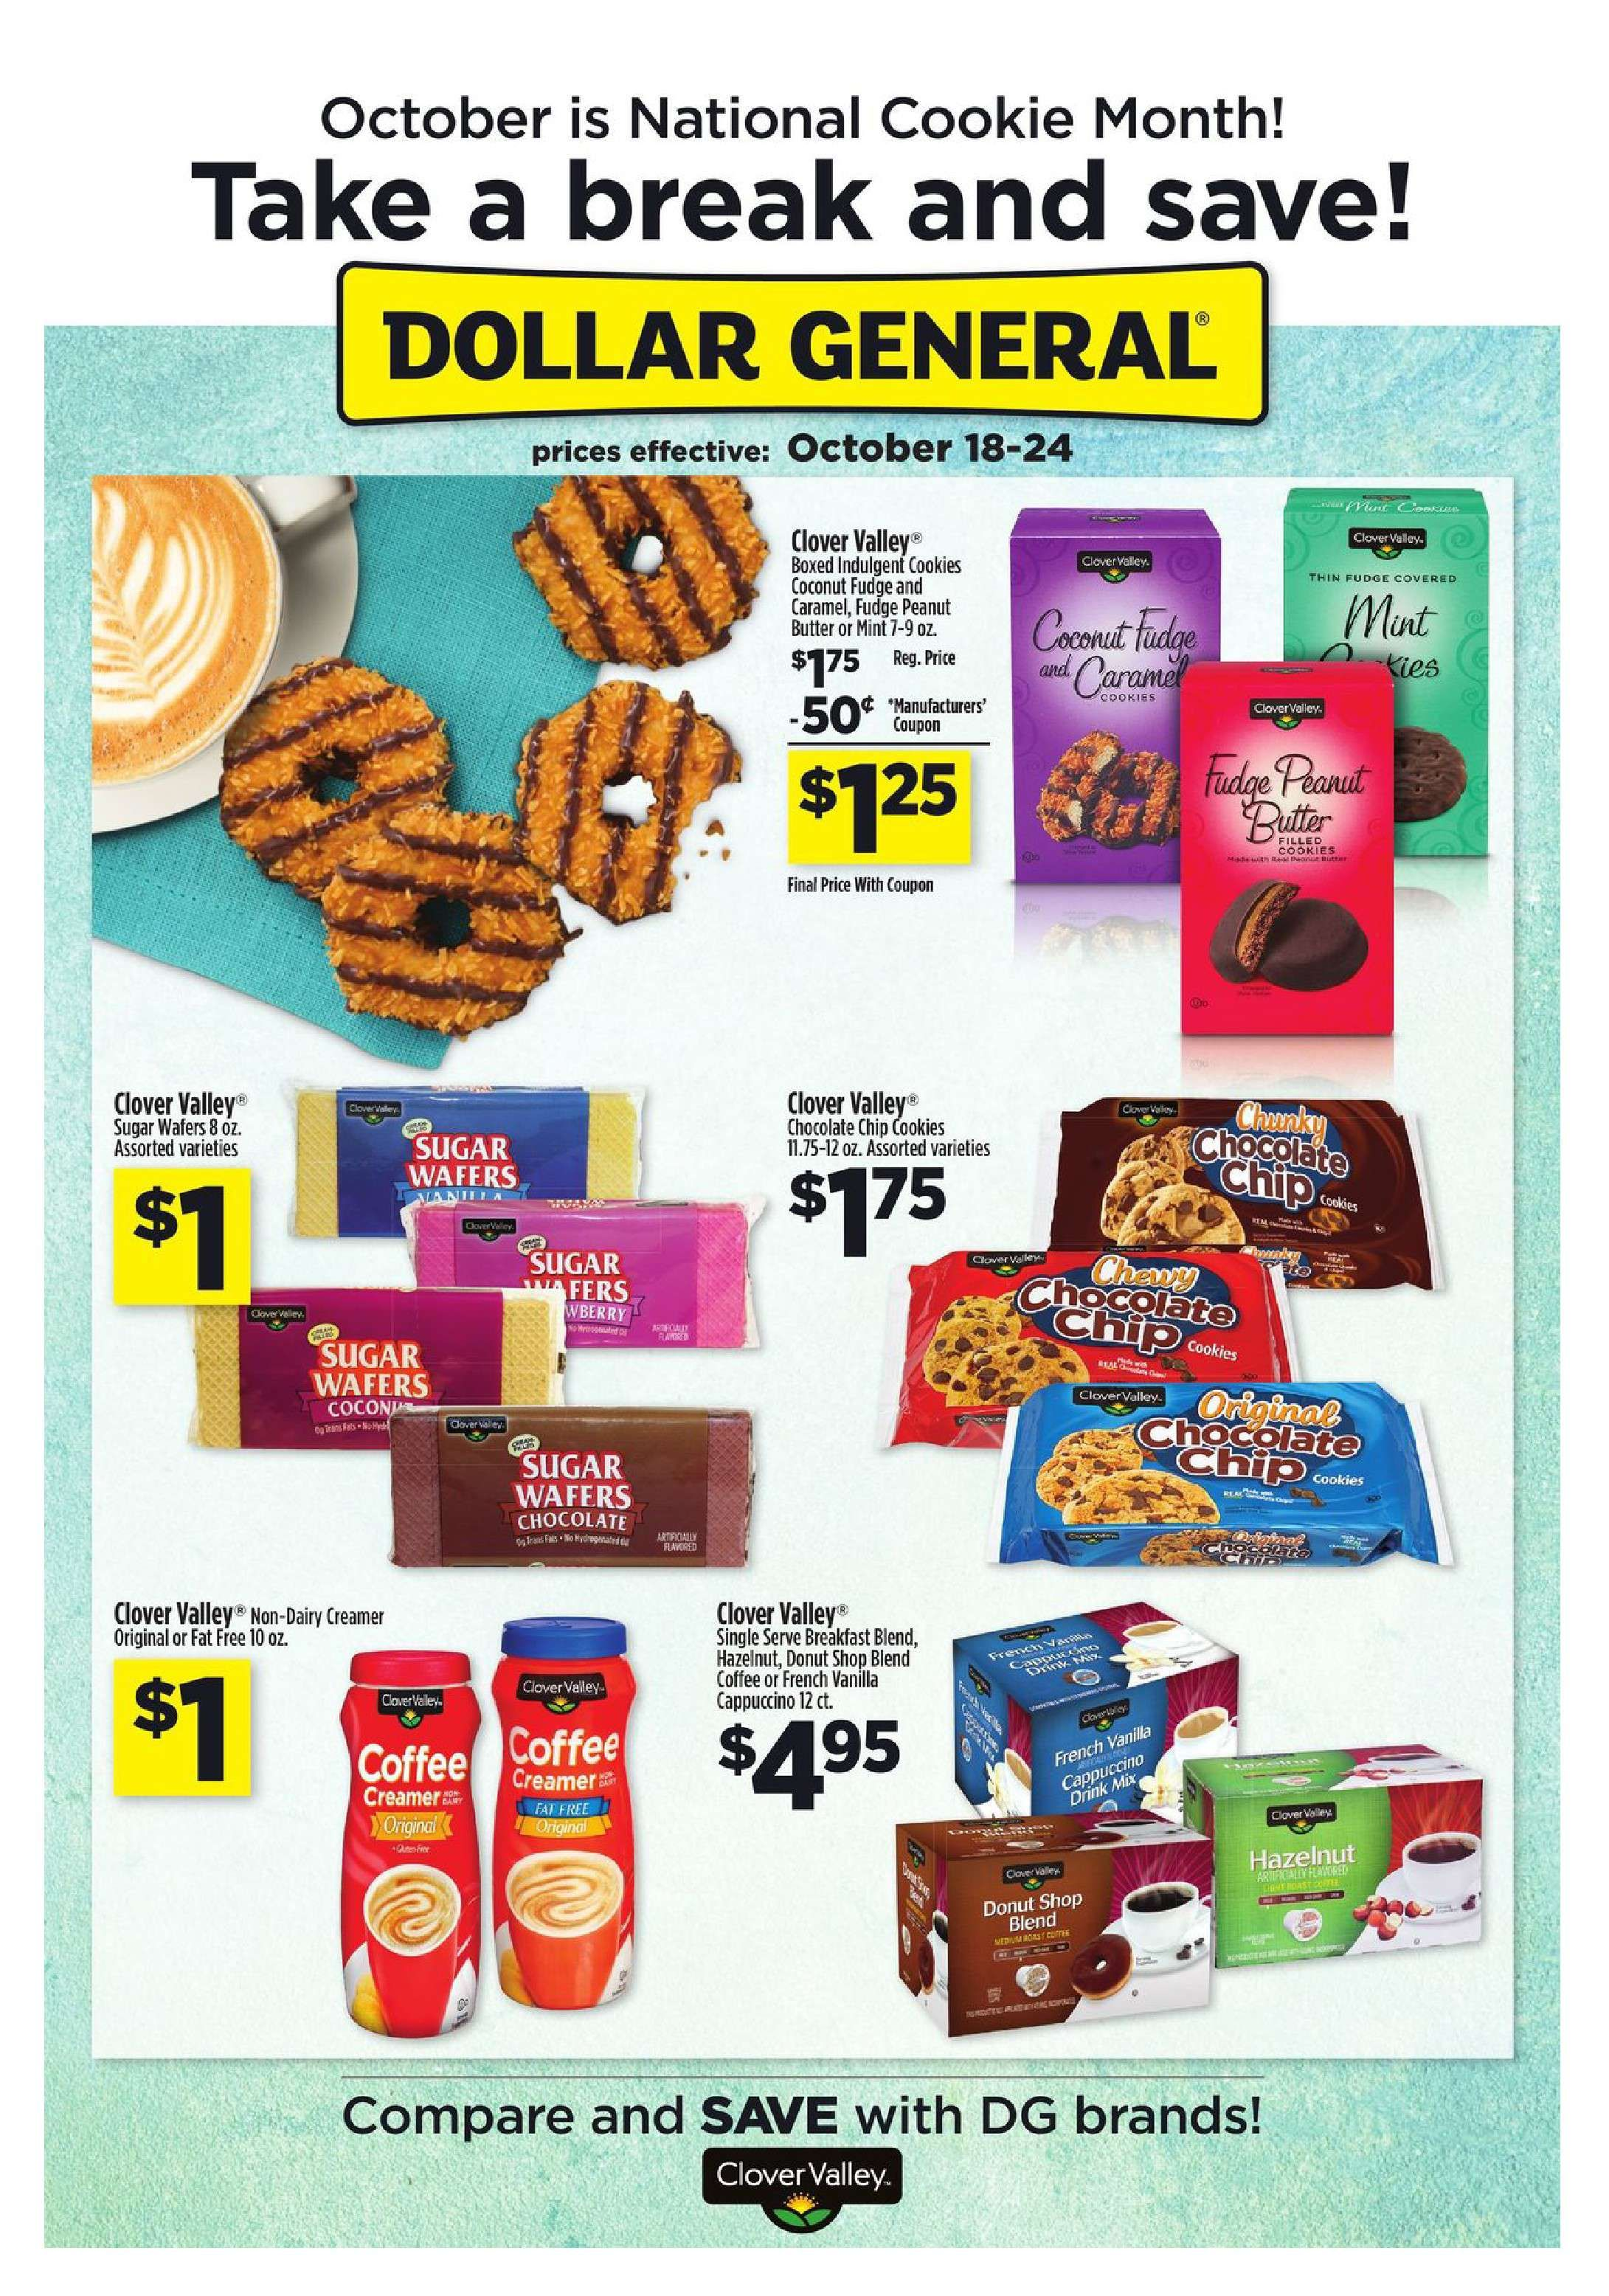 Dollar General Weekly Ad October 18 - 24, 2015 - http://www